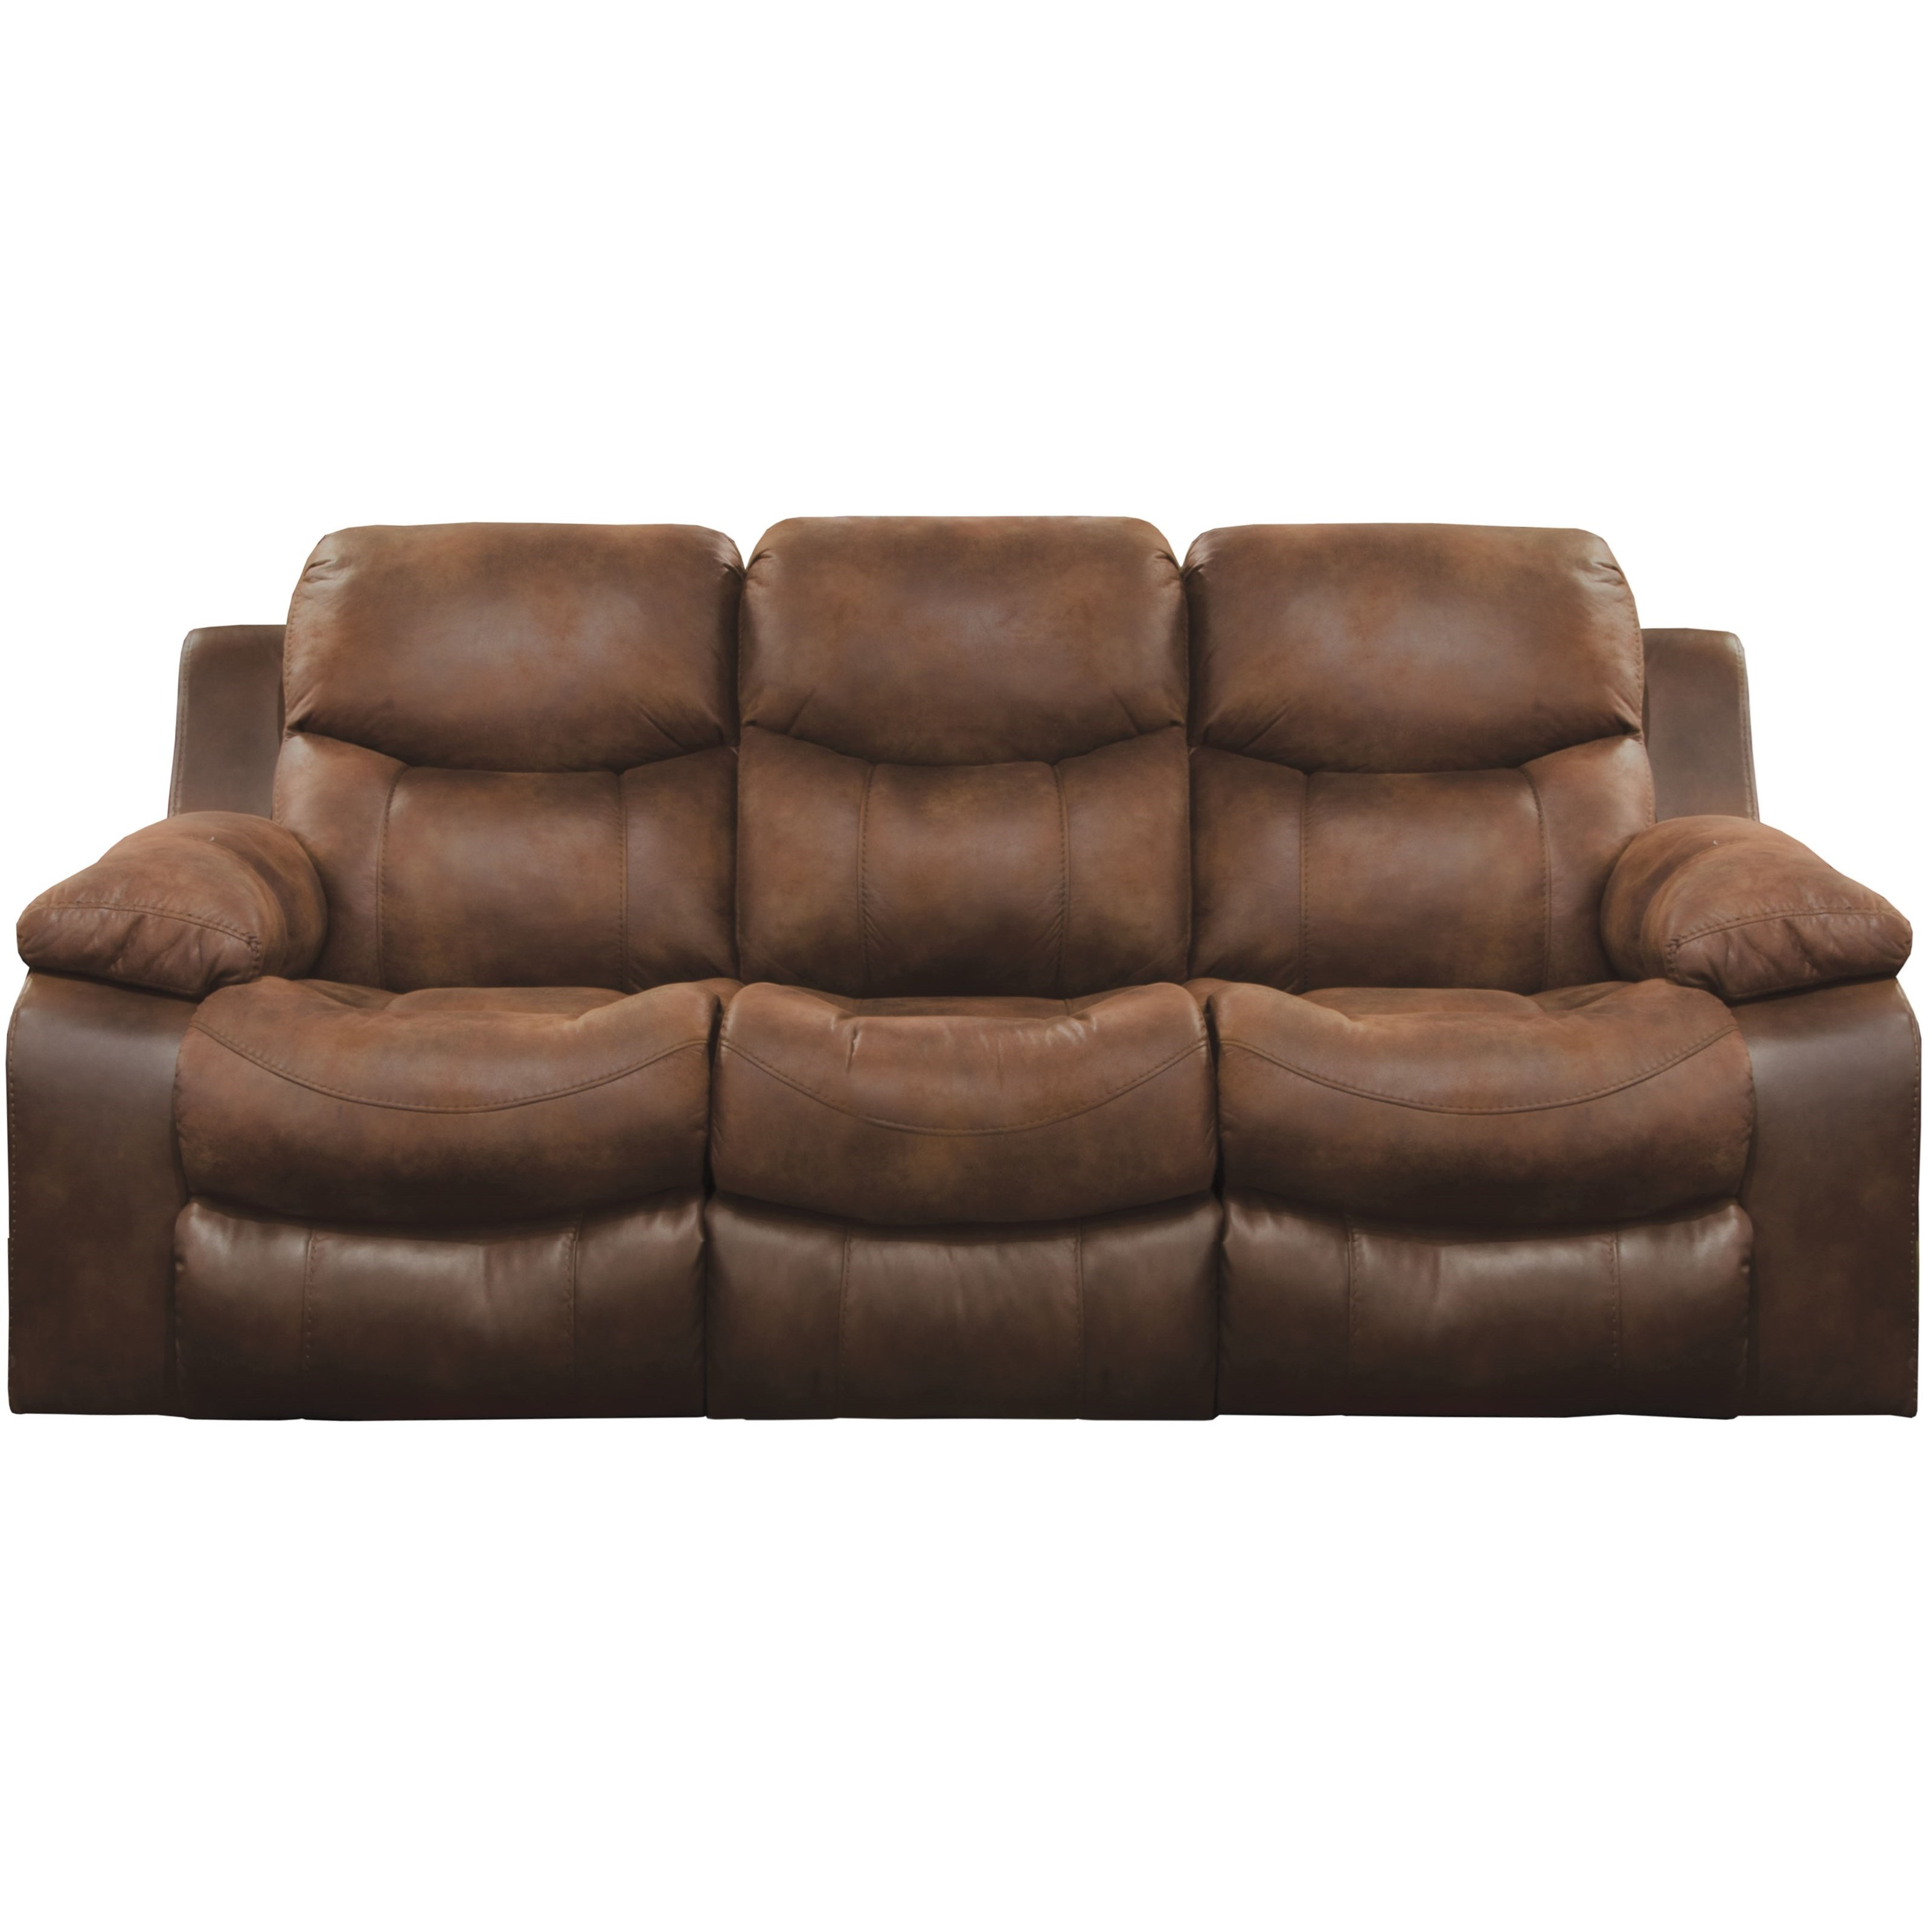 catnapper ranger reclining sectional sofa set padstow bed henderson with drop down table